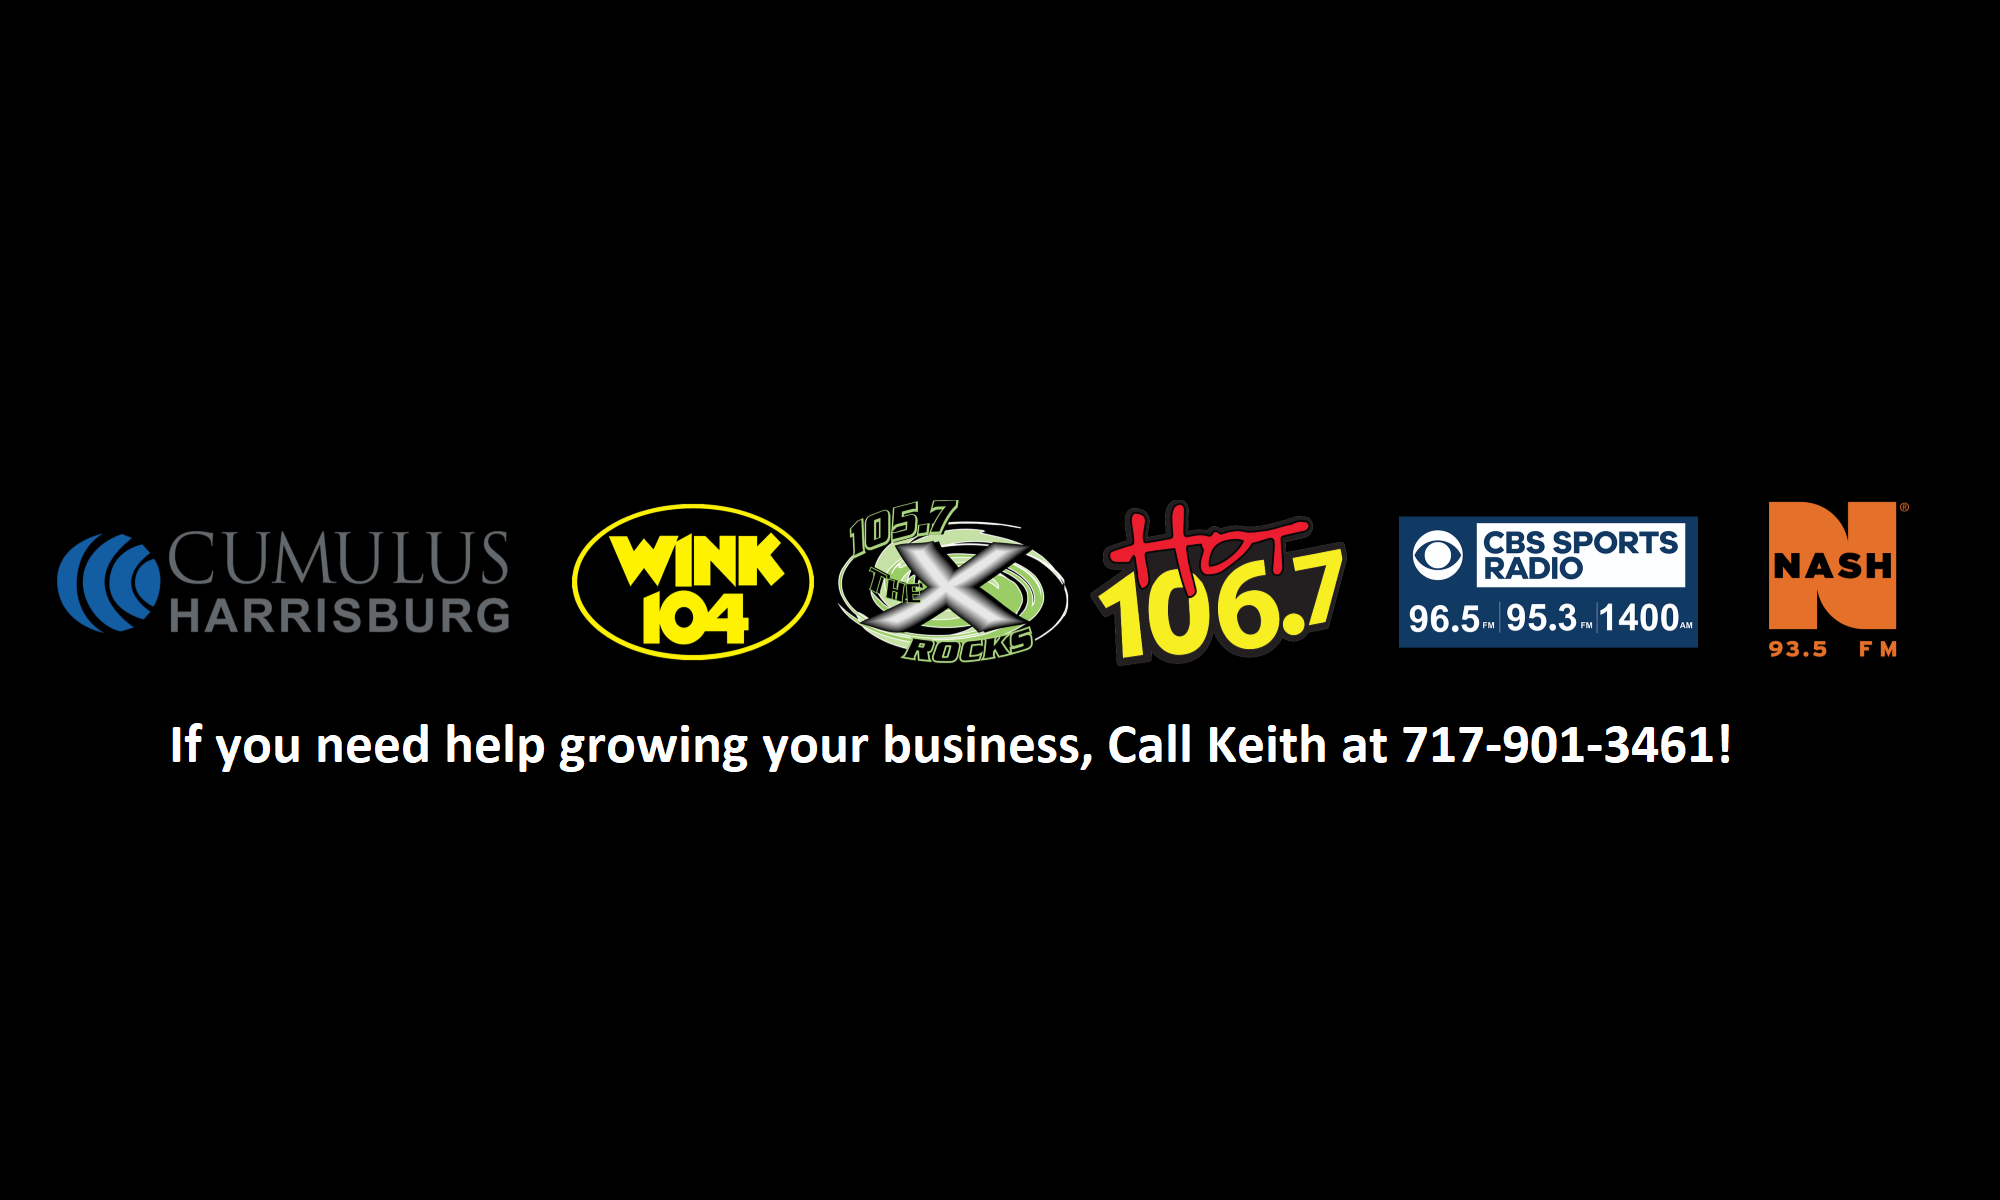 Free Marketing Help - Radio and Digital solutions